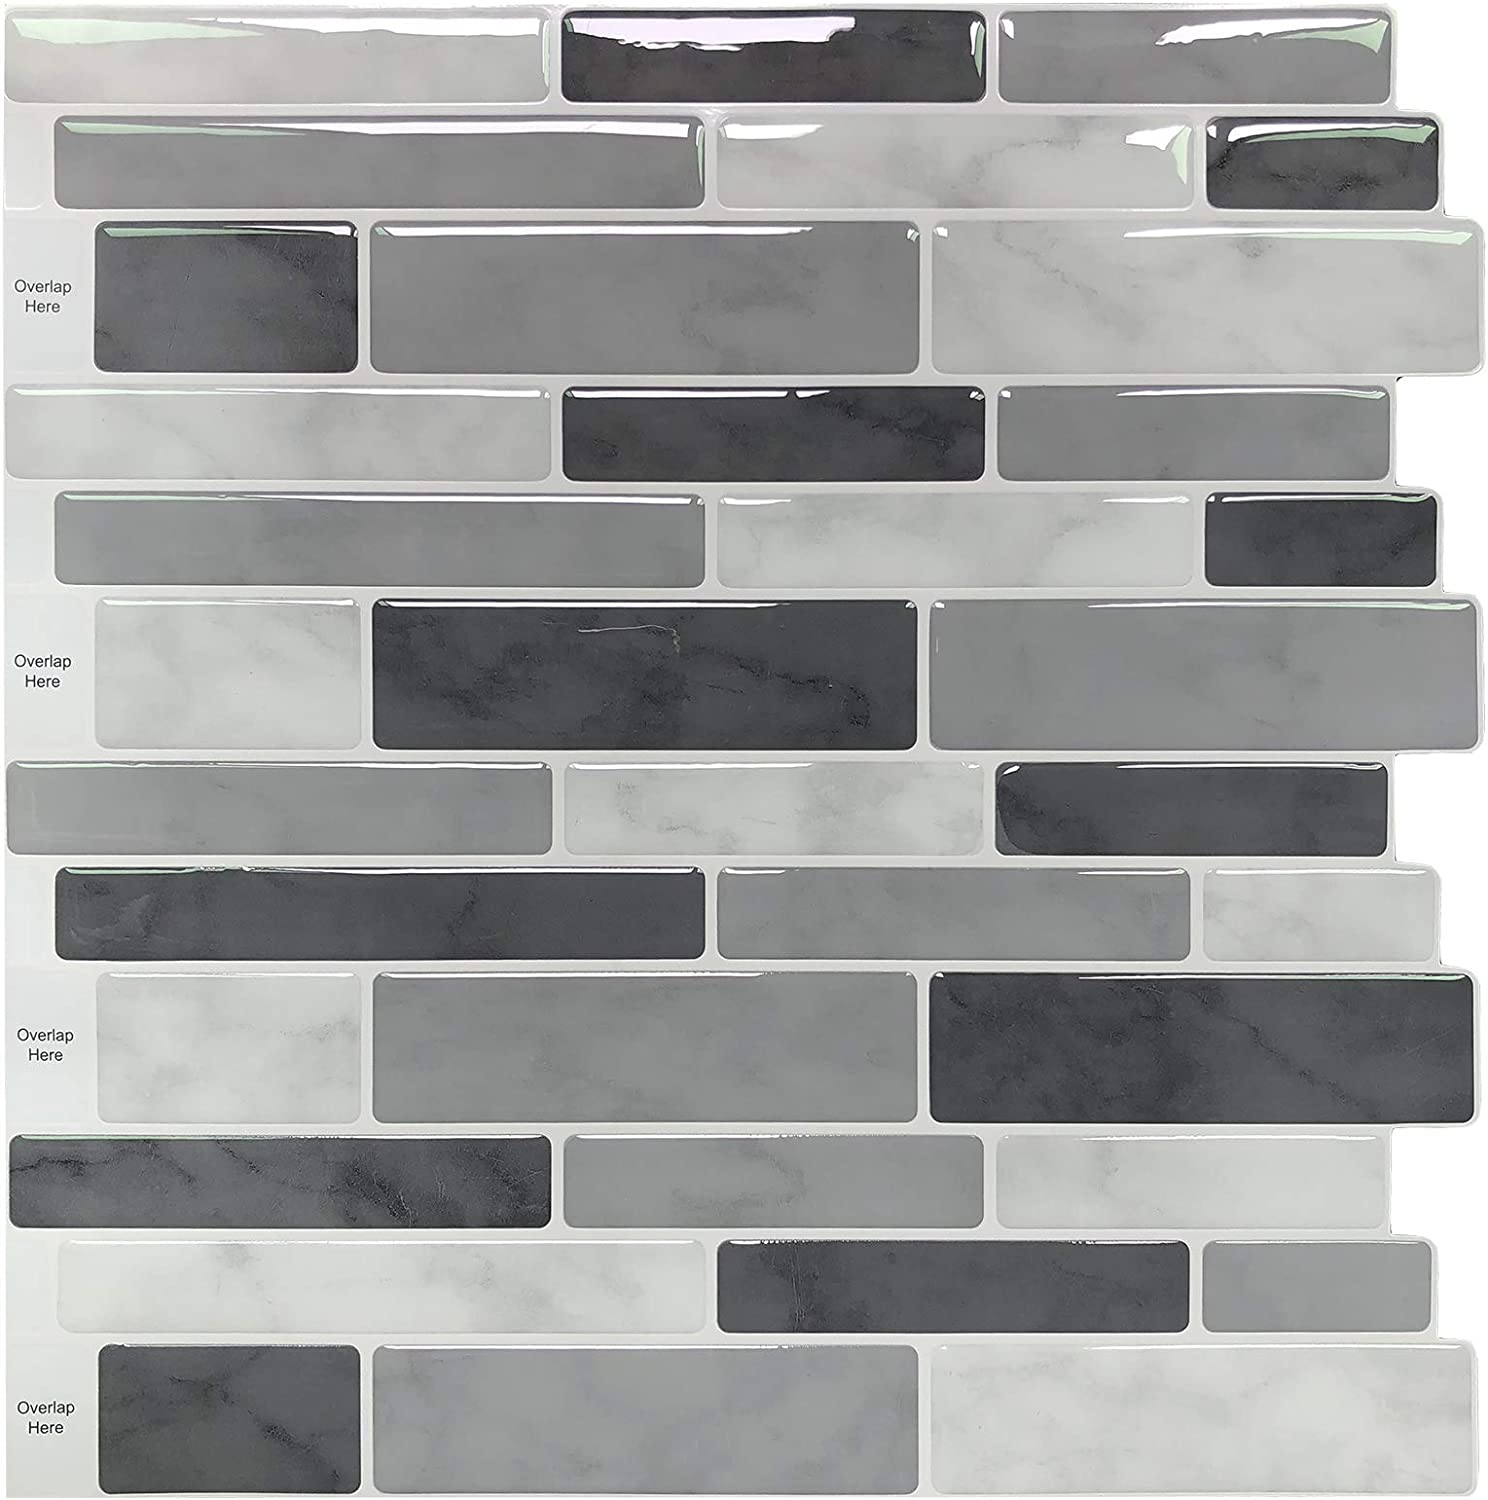 Peel Stick Backsplash Tile For Kitchen Gray Decorative Tile 10 Sheets Amazon Com